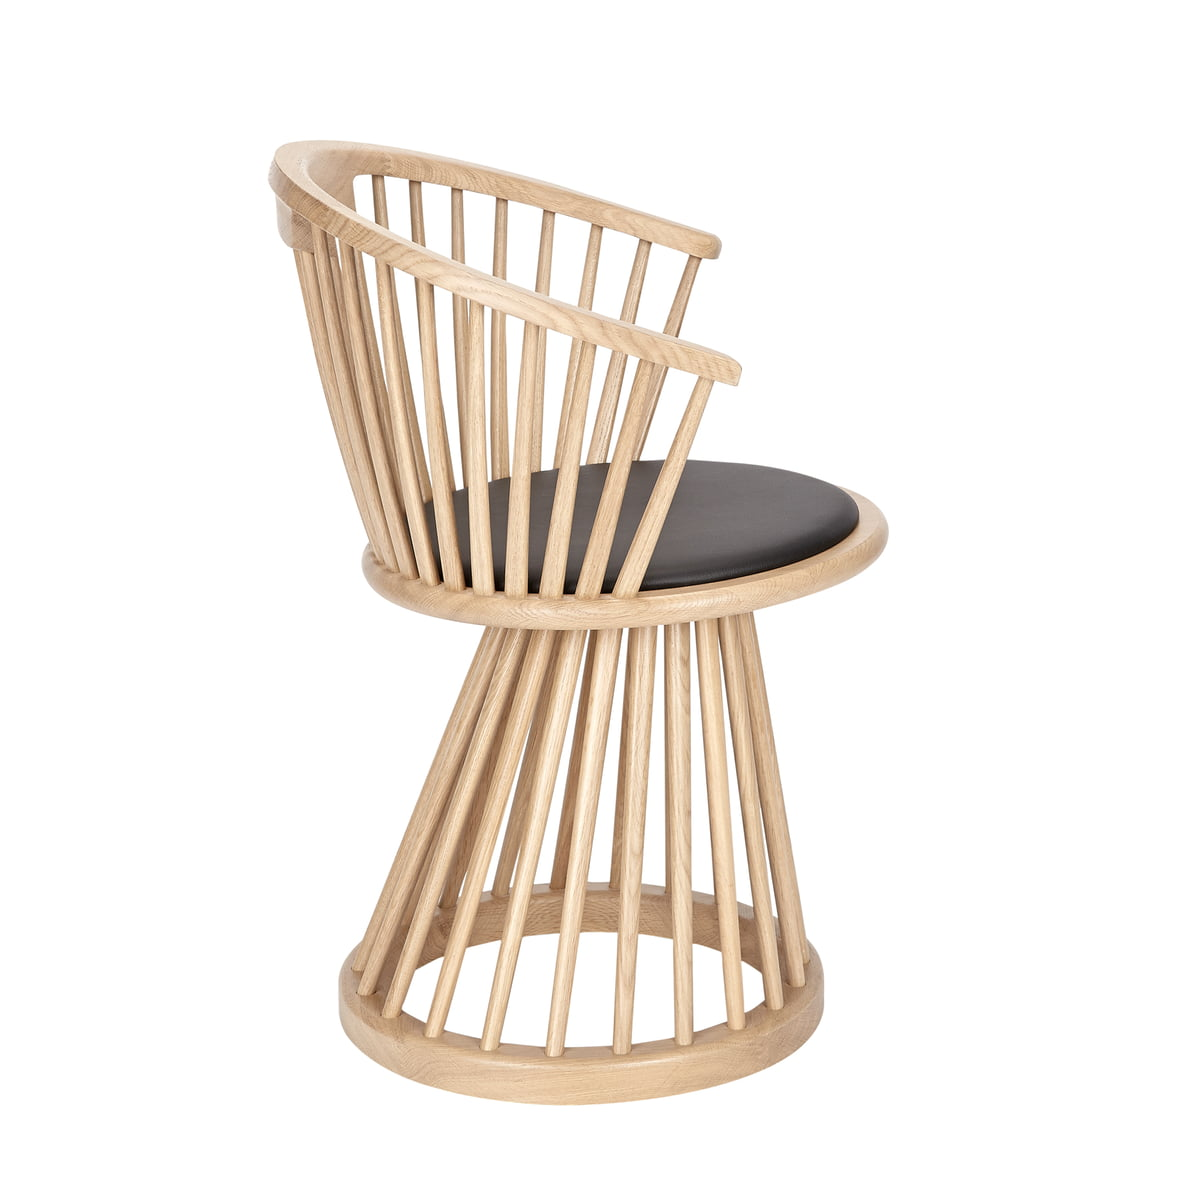 Fan Dining Chair By Tom Dixon In The Shop